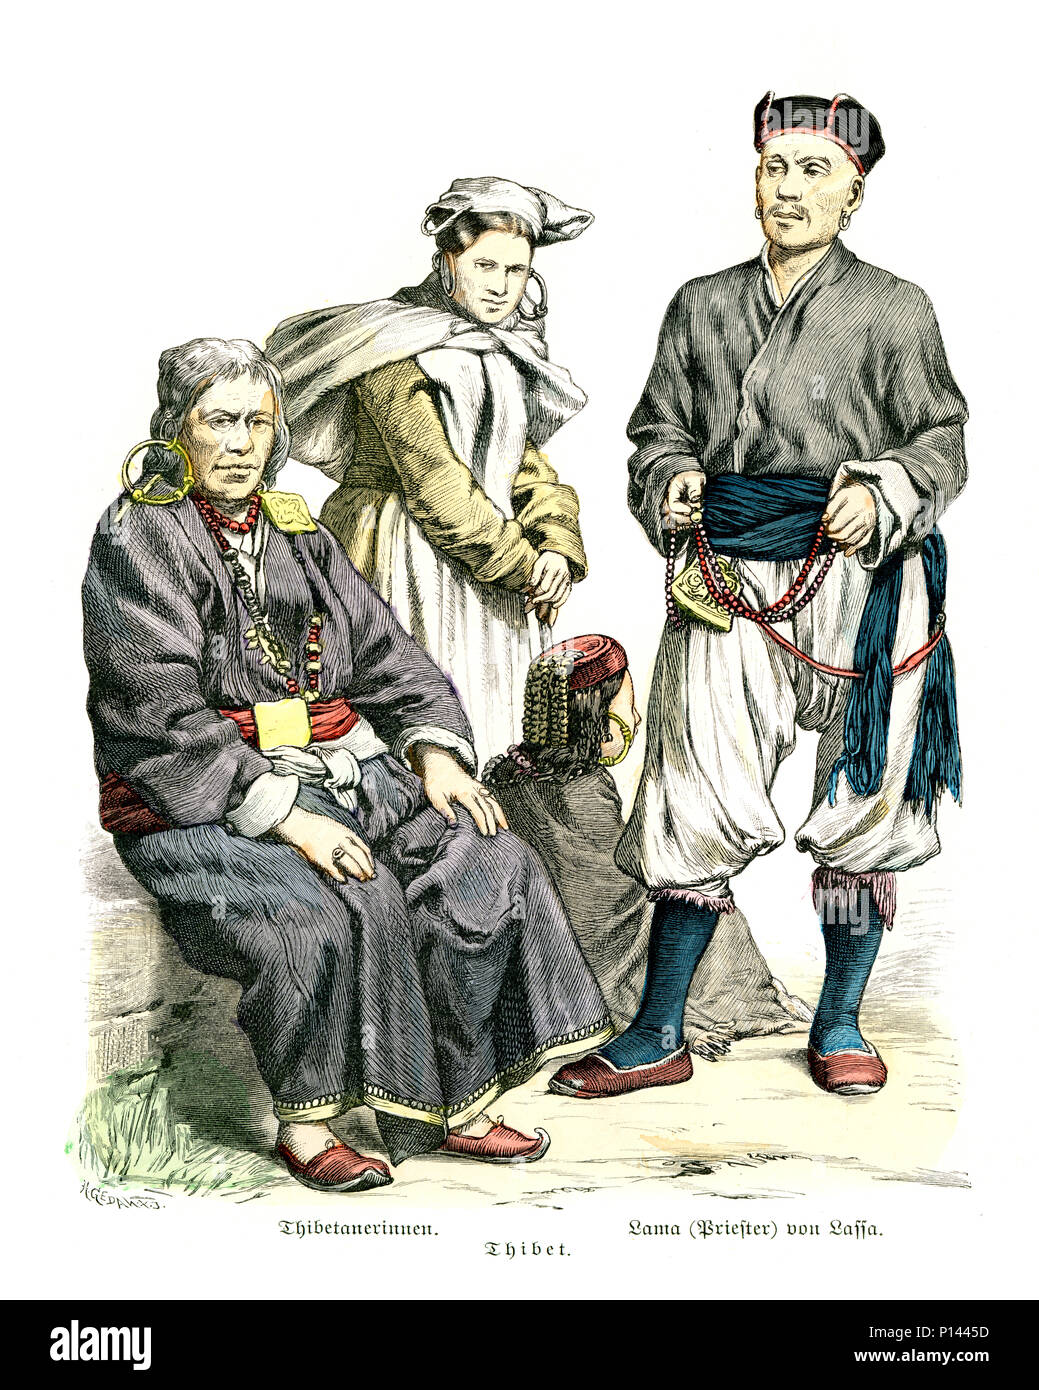 Vintage engraving of History of Fashion, Costumes of Tibet, Men and Woman, Lama of Lassa, 19th Century - Stock Image